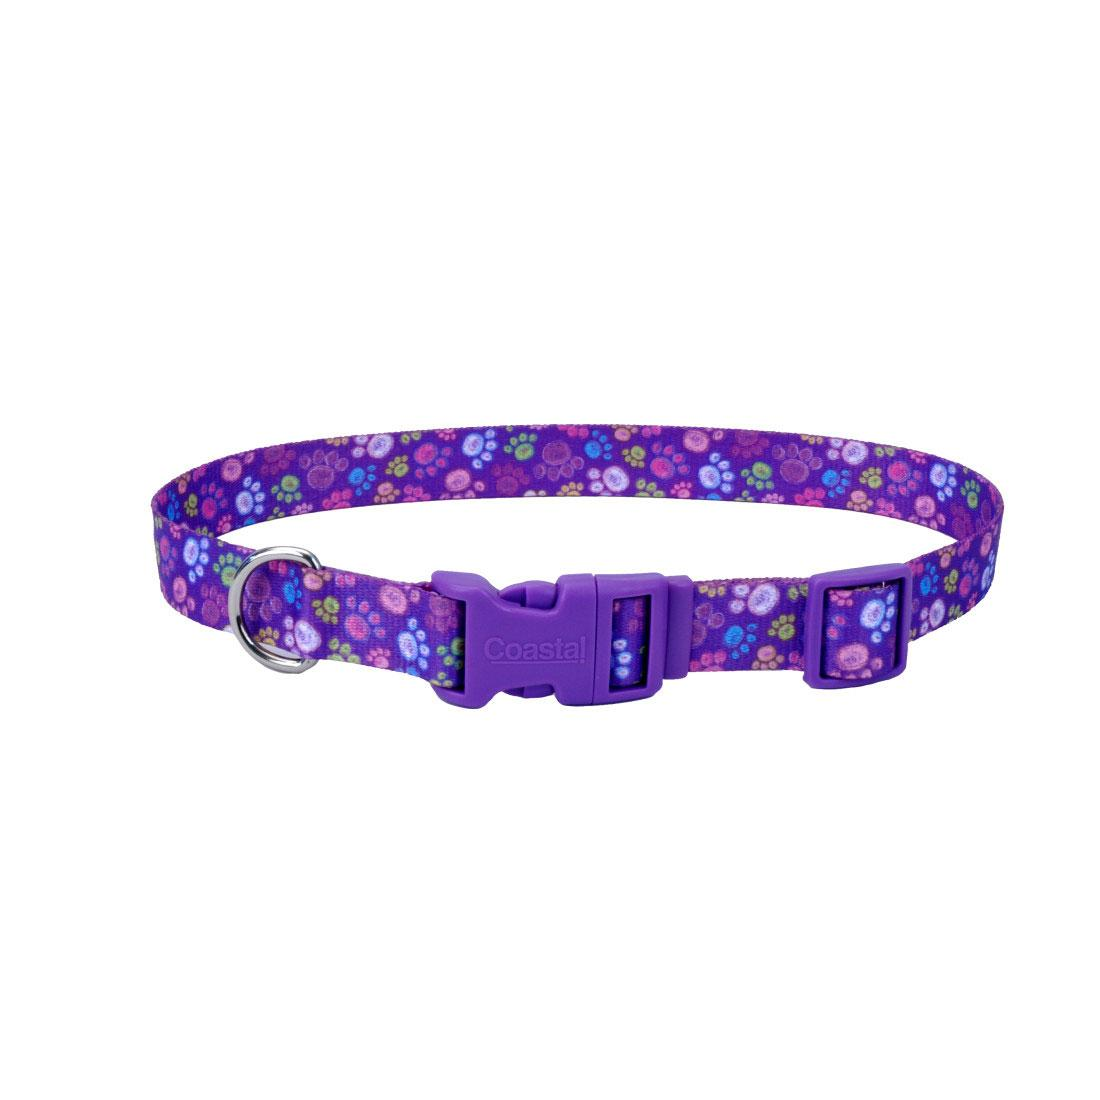 Styles Adjustable Dog Collar, Special Paws, 5/8-in x 10-in-14-in